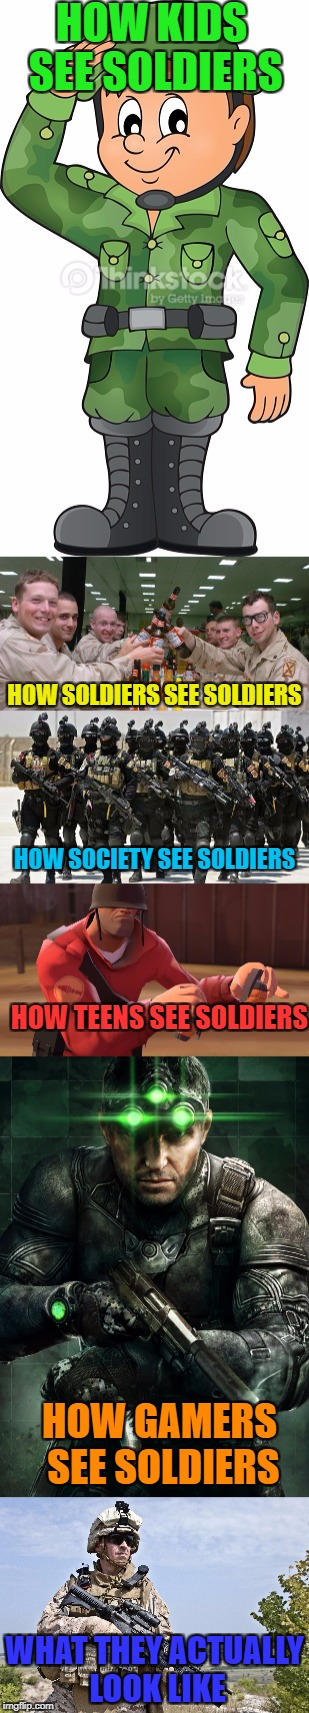 Soldiers (Military week by Chad- DashHopes, SpursFanFromAround, JBmemegeek) | HOW KIDS SEE SOLDIERS WHAT THEY ACTUALLY LOOK LIKE HOW SOLDIERS SEE SOLDIERS HOW SOCIETY SEE SOLDIERS HOW TEENS SEE SOLDIERS HOW GAMERS SEE  | image tagged in funny,memes,military | made w/ Imgflip meme maker